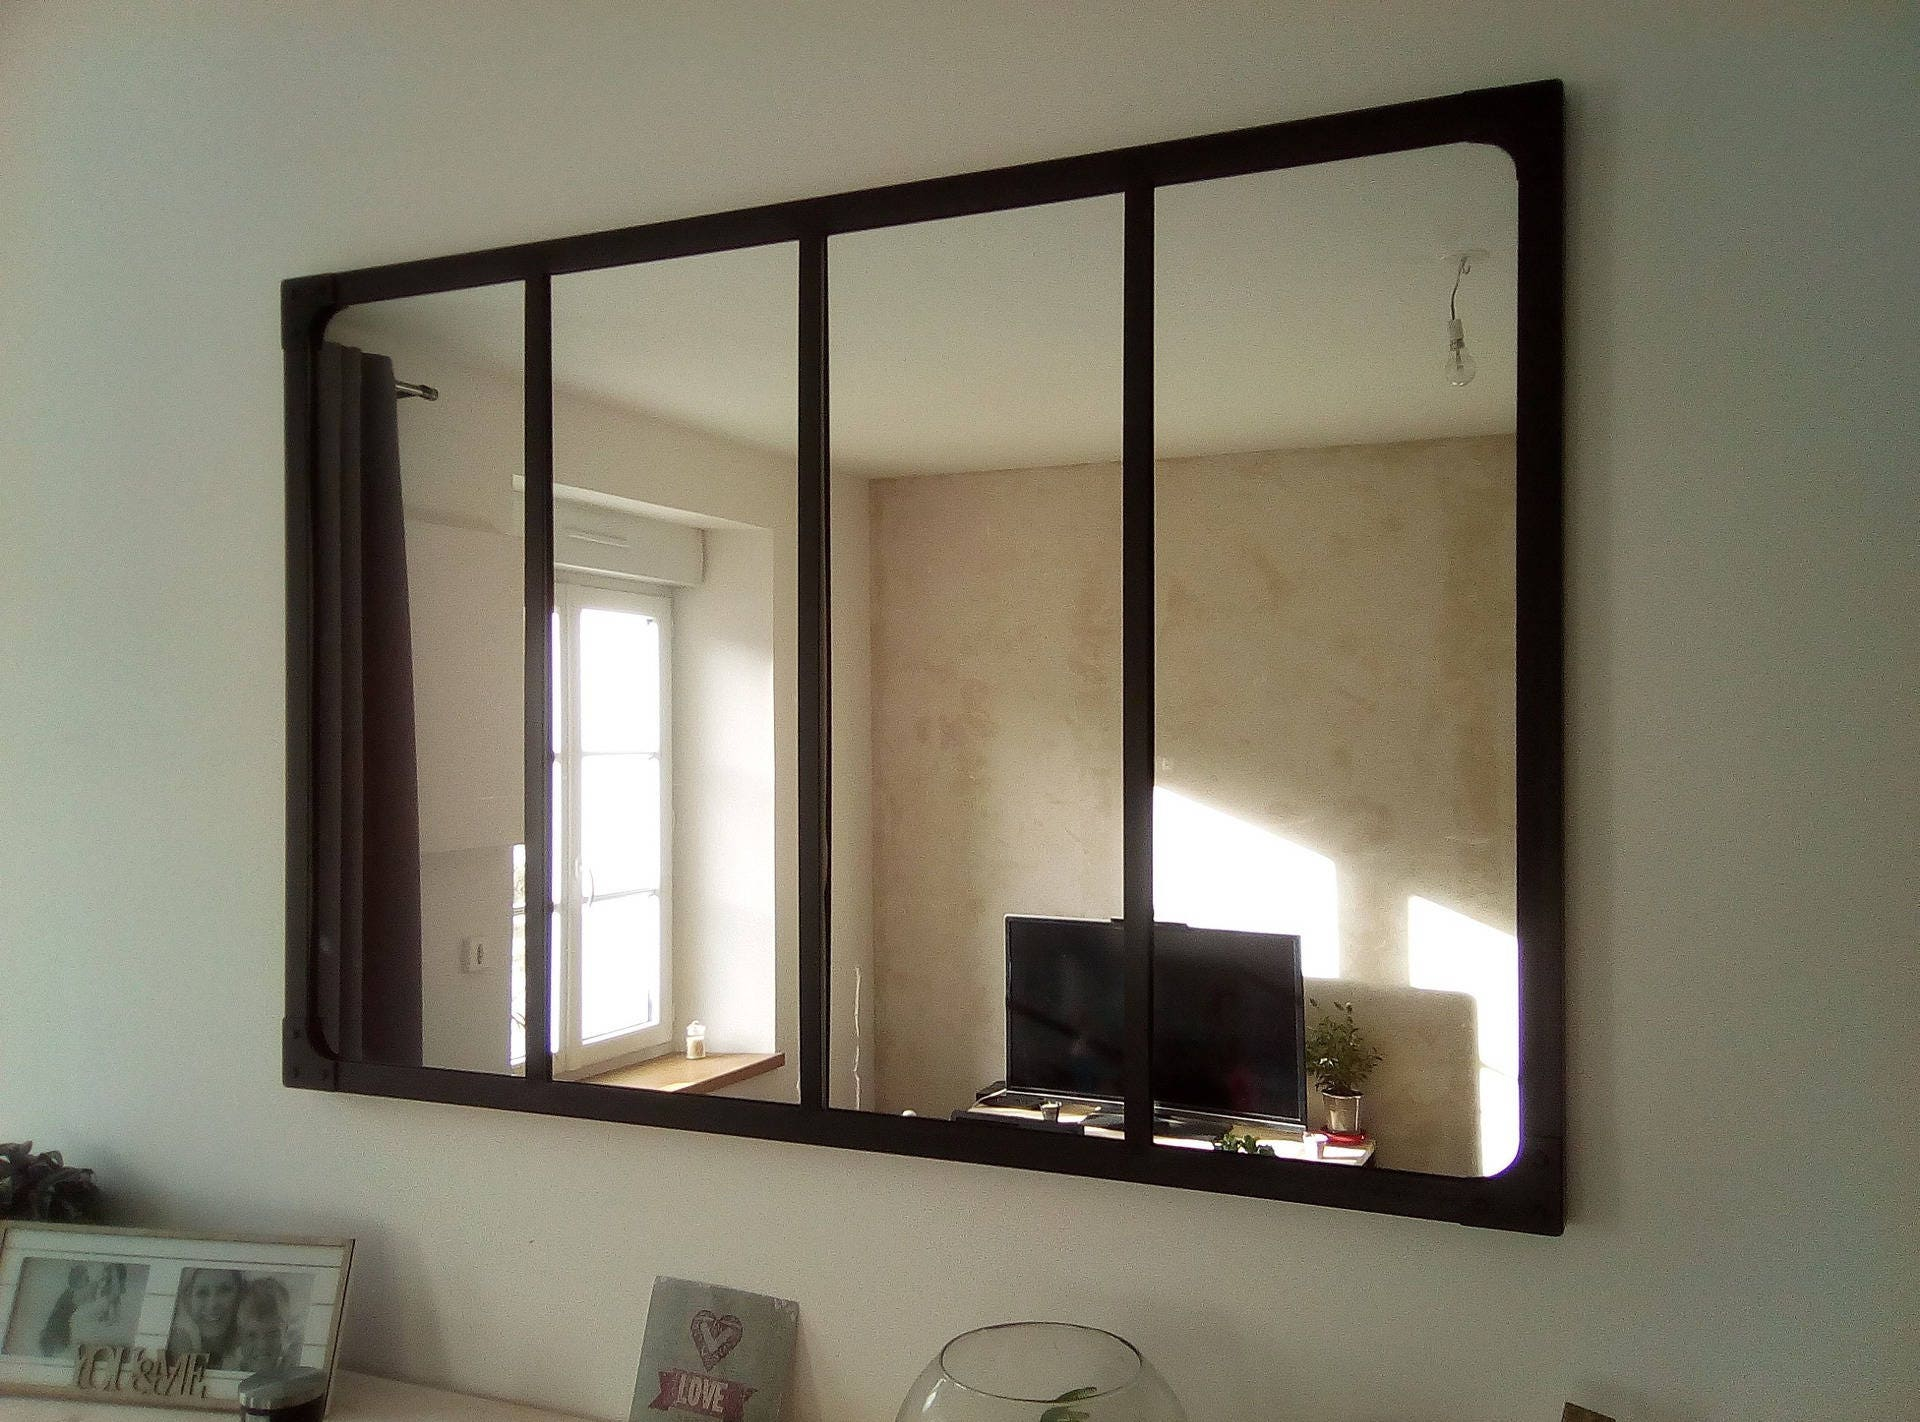 Miroir style verri re industriel 120x80 cm for Verriere style industriel